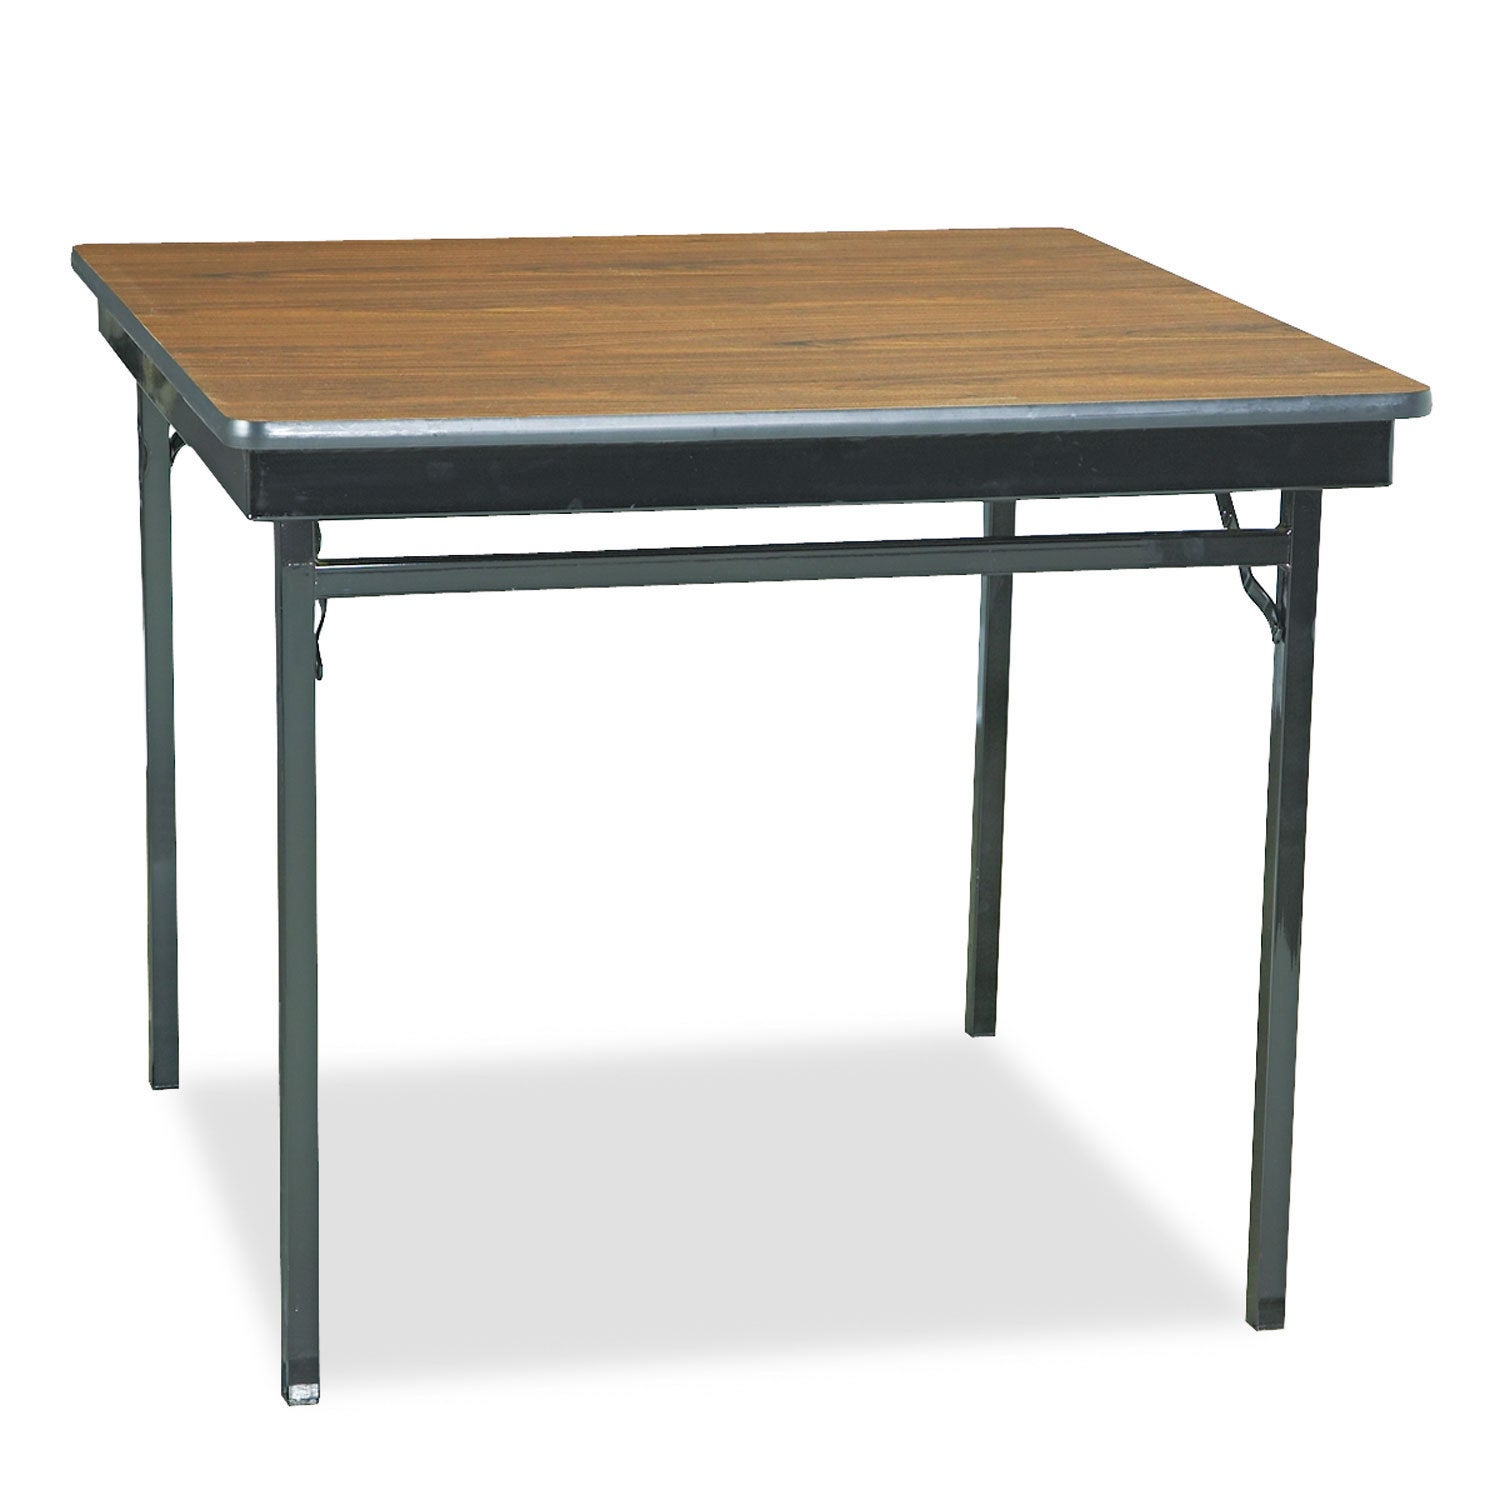 Barricks Special Size Folding Table, Square, 36w x 36d x ...